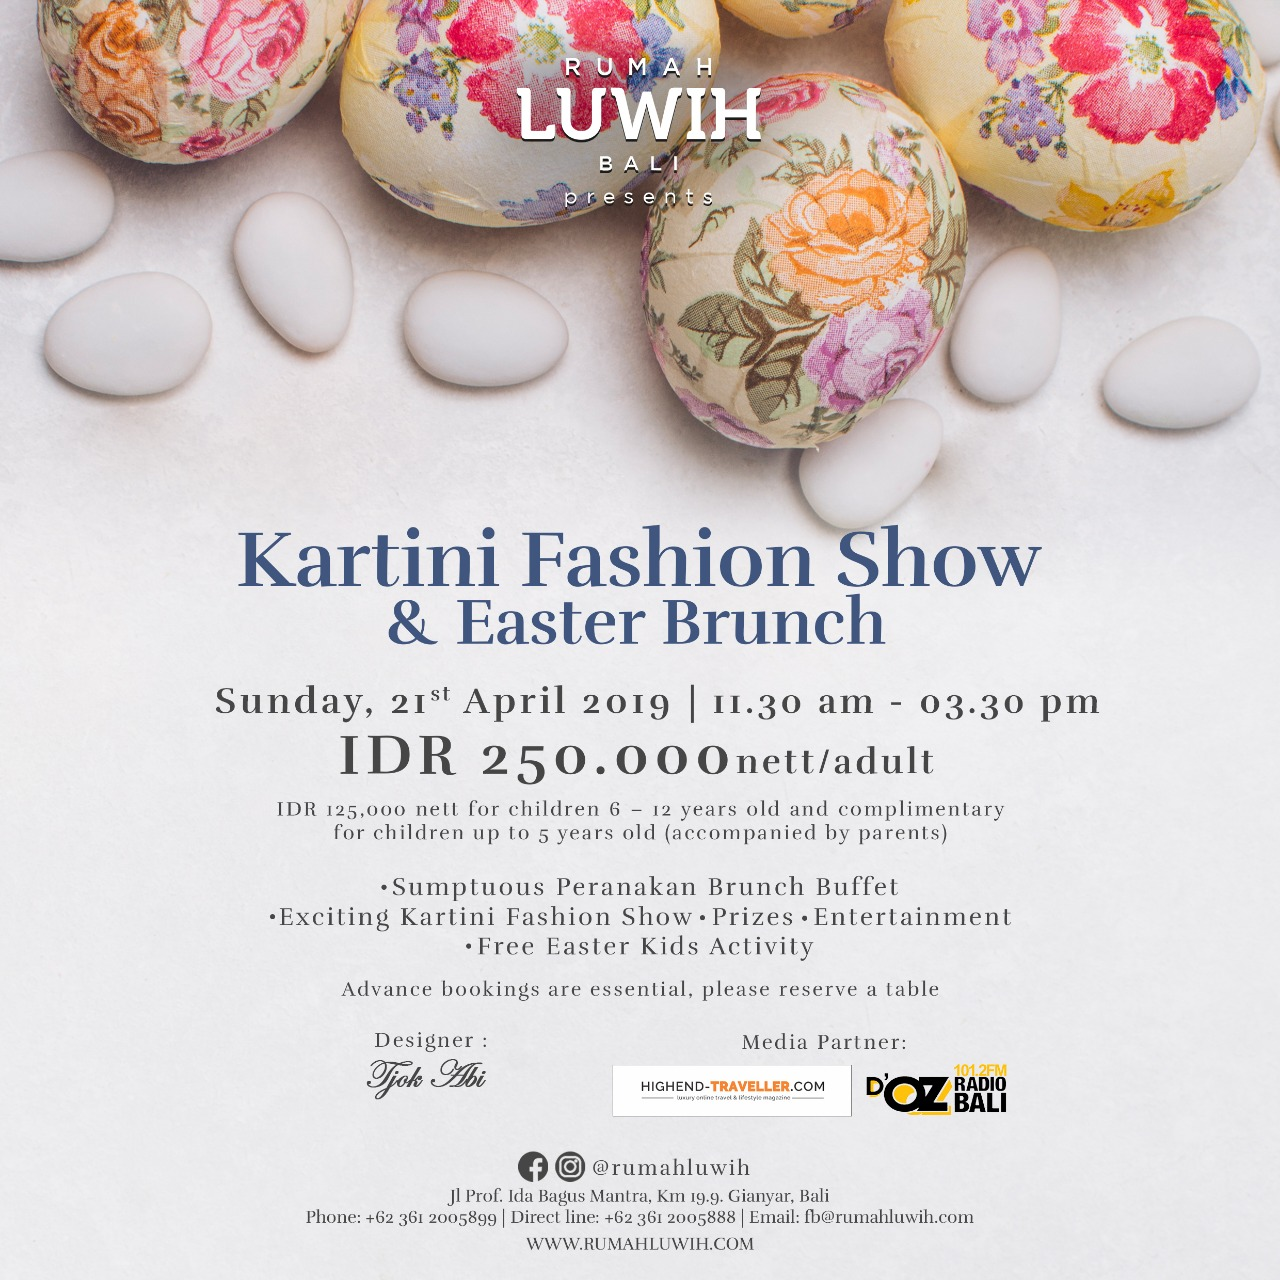 http://highend-traveller.com/kartini-fashion-show-easter-brunch-2/